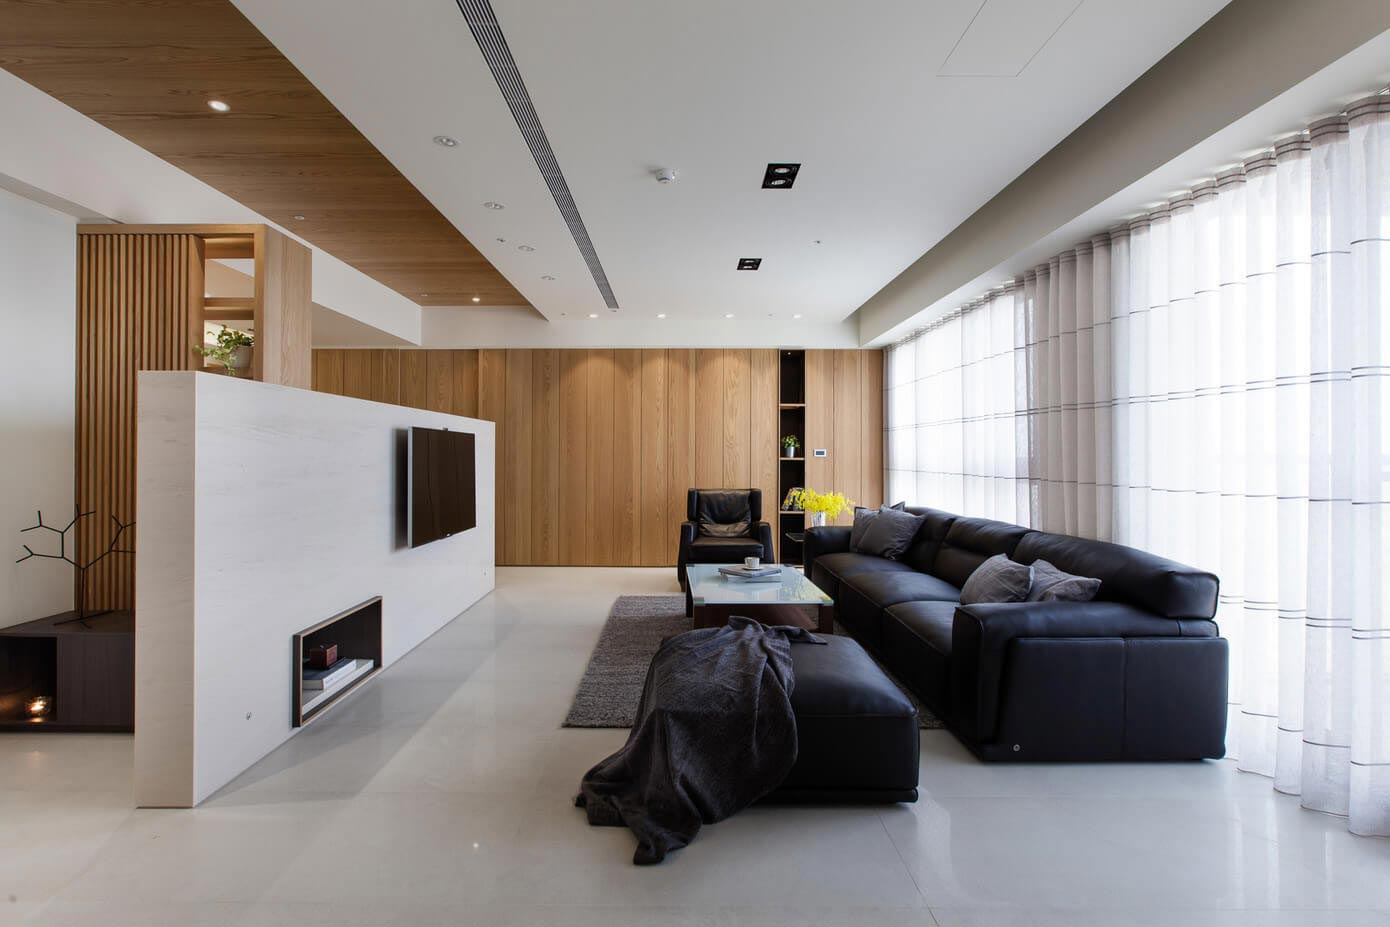 Lu s home apartment in kaohsiung city taiwan by pmd for Comedor minimalista